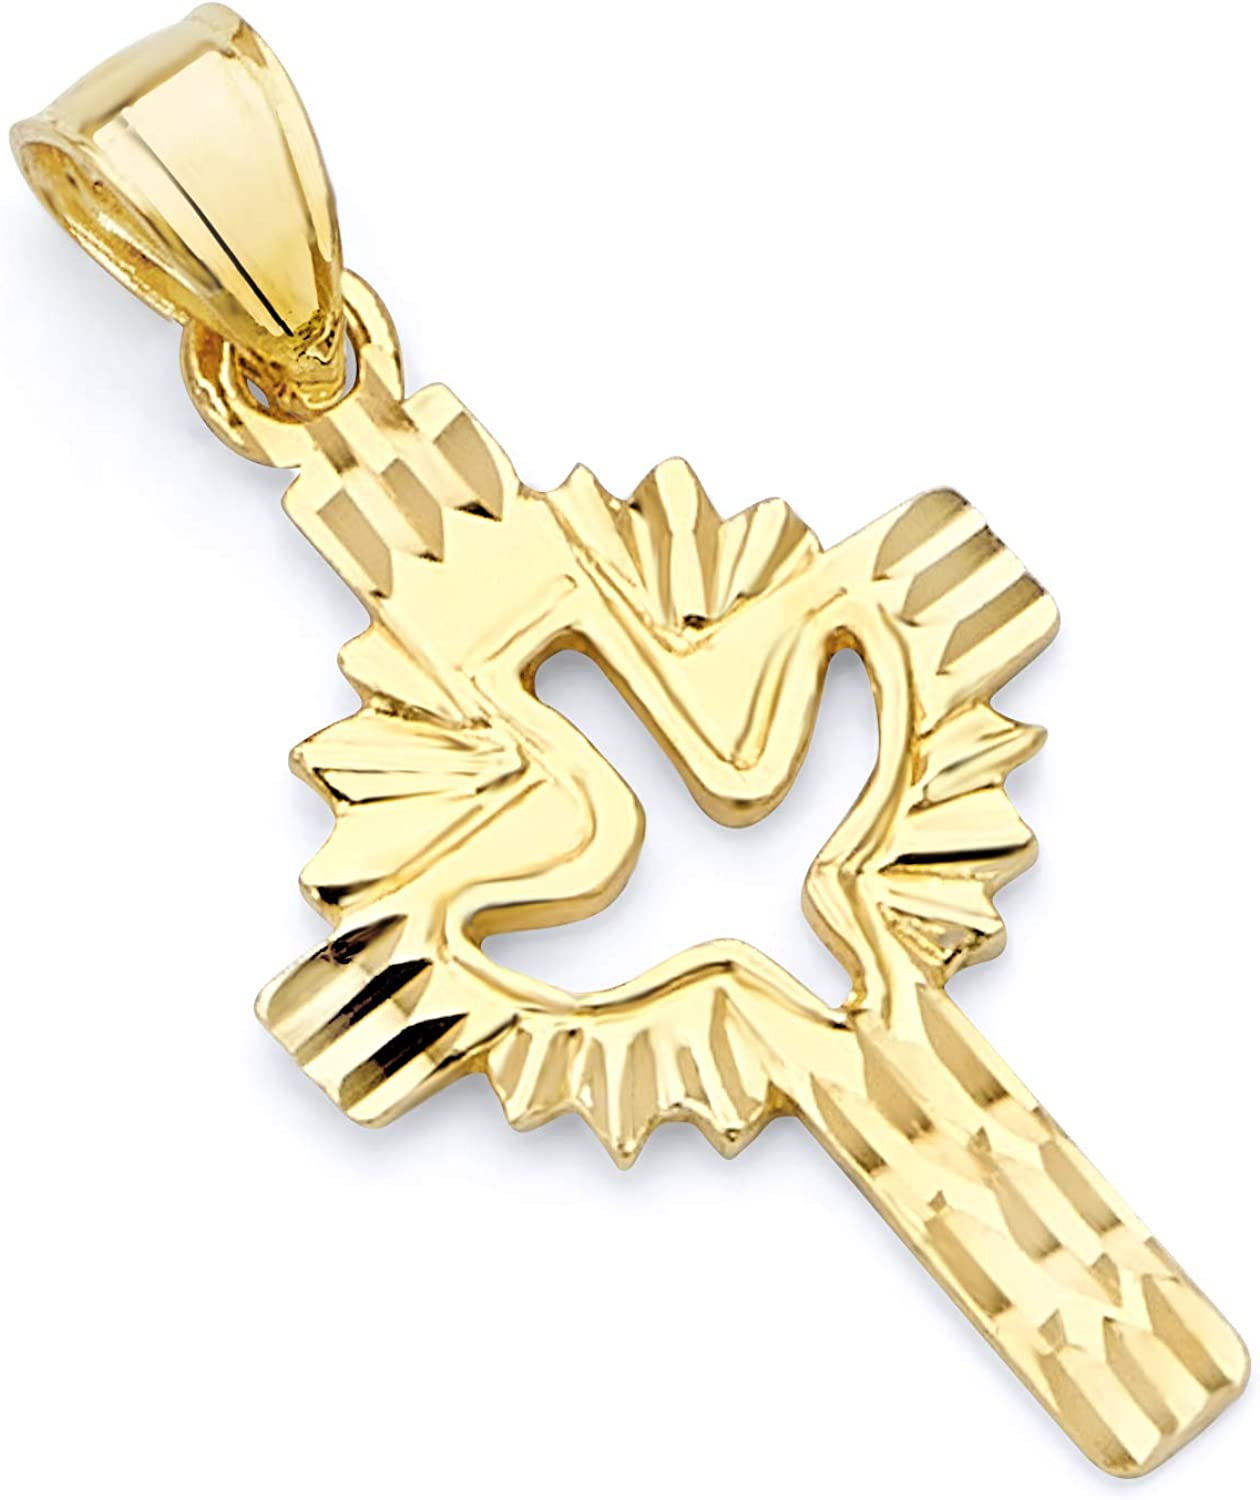 14K Yellow Gold Religious Cross with Holy Spirit Dove Charm Pendant For Necklace or Chain